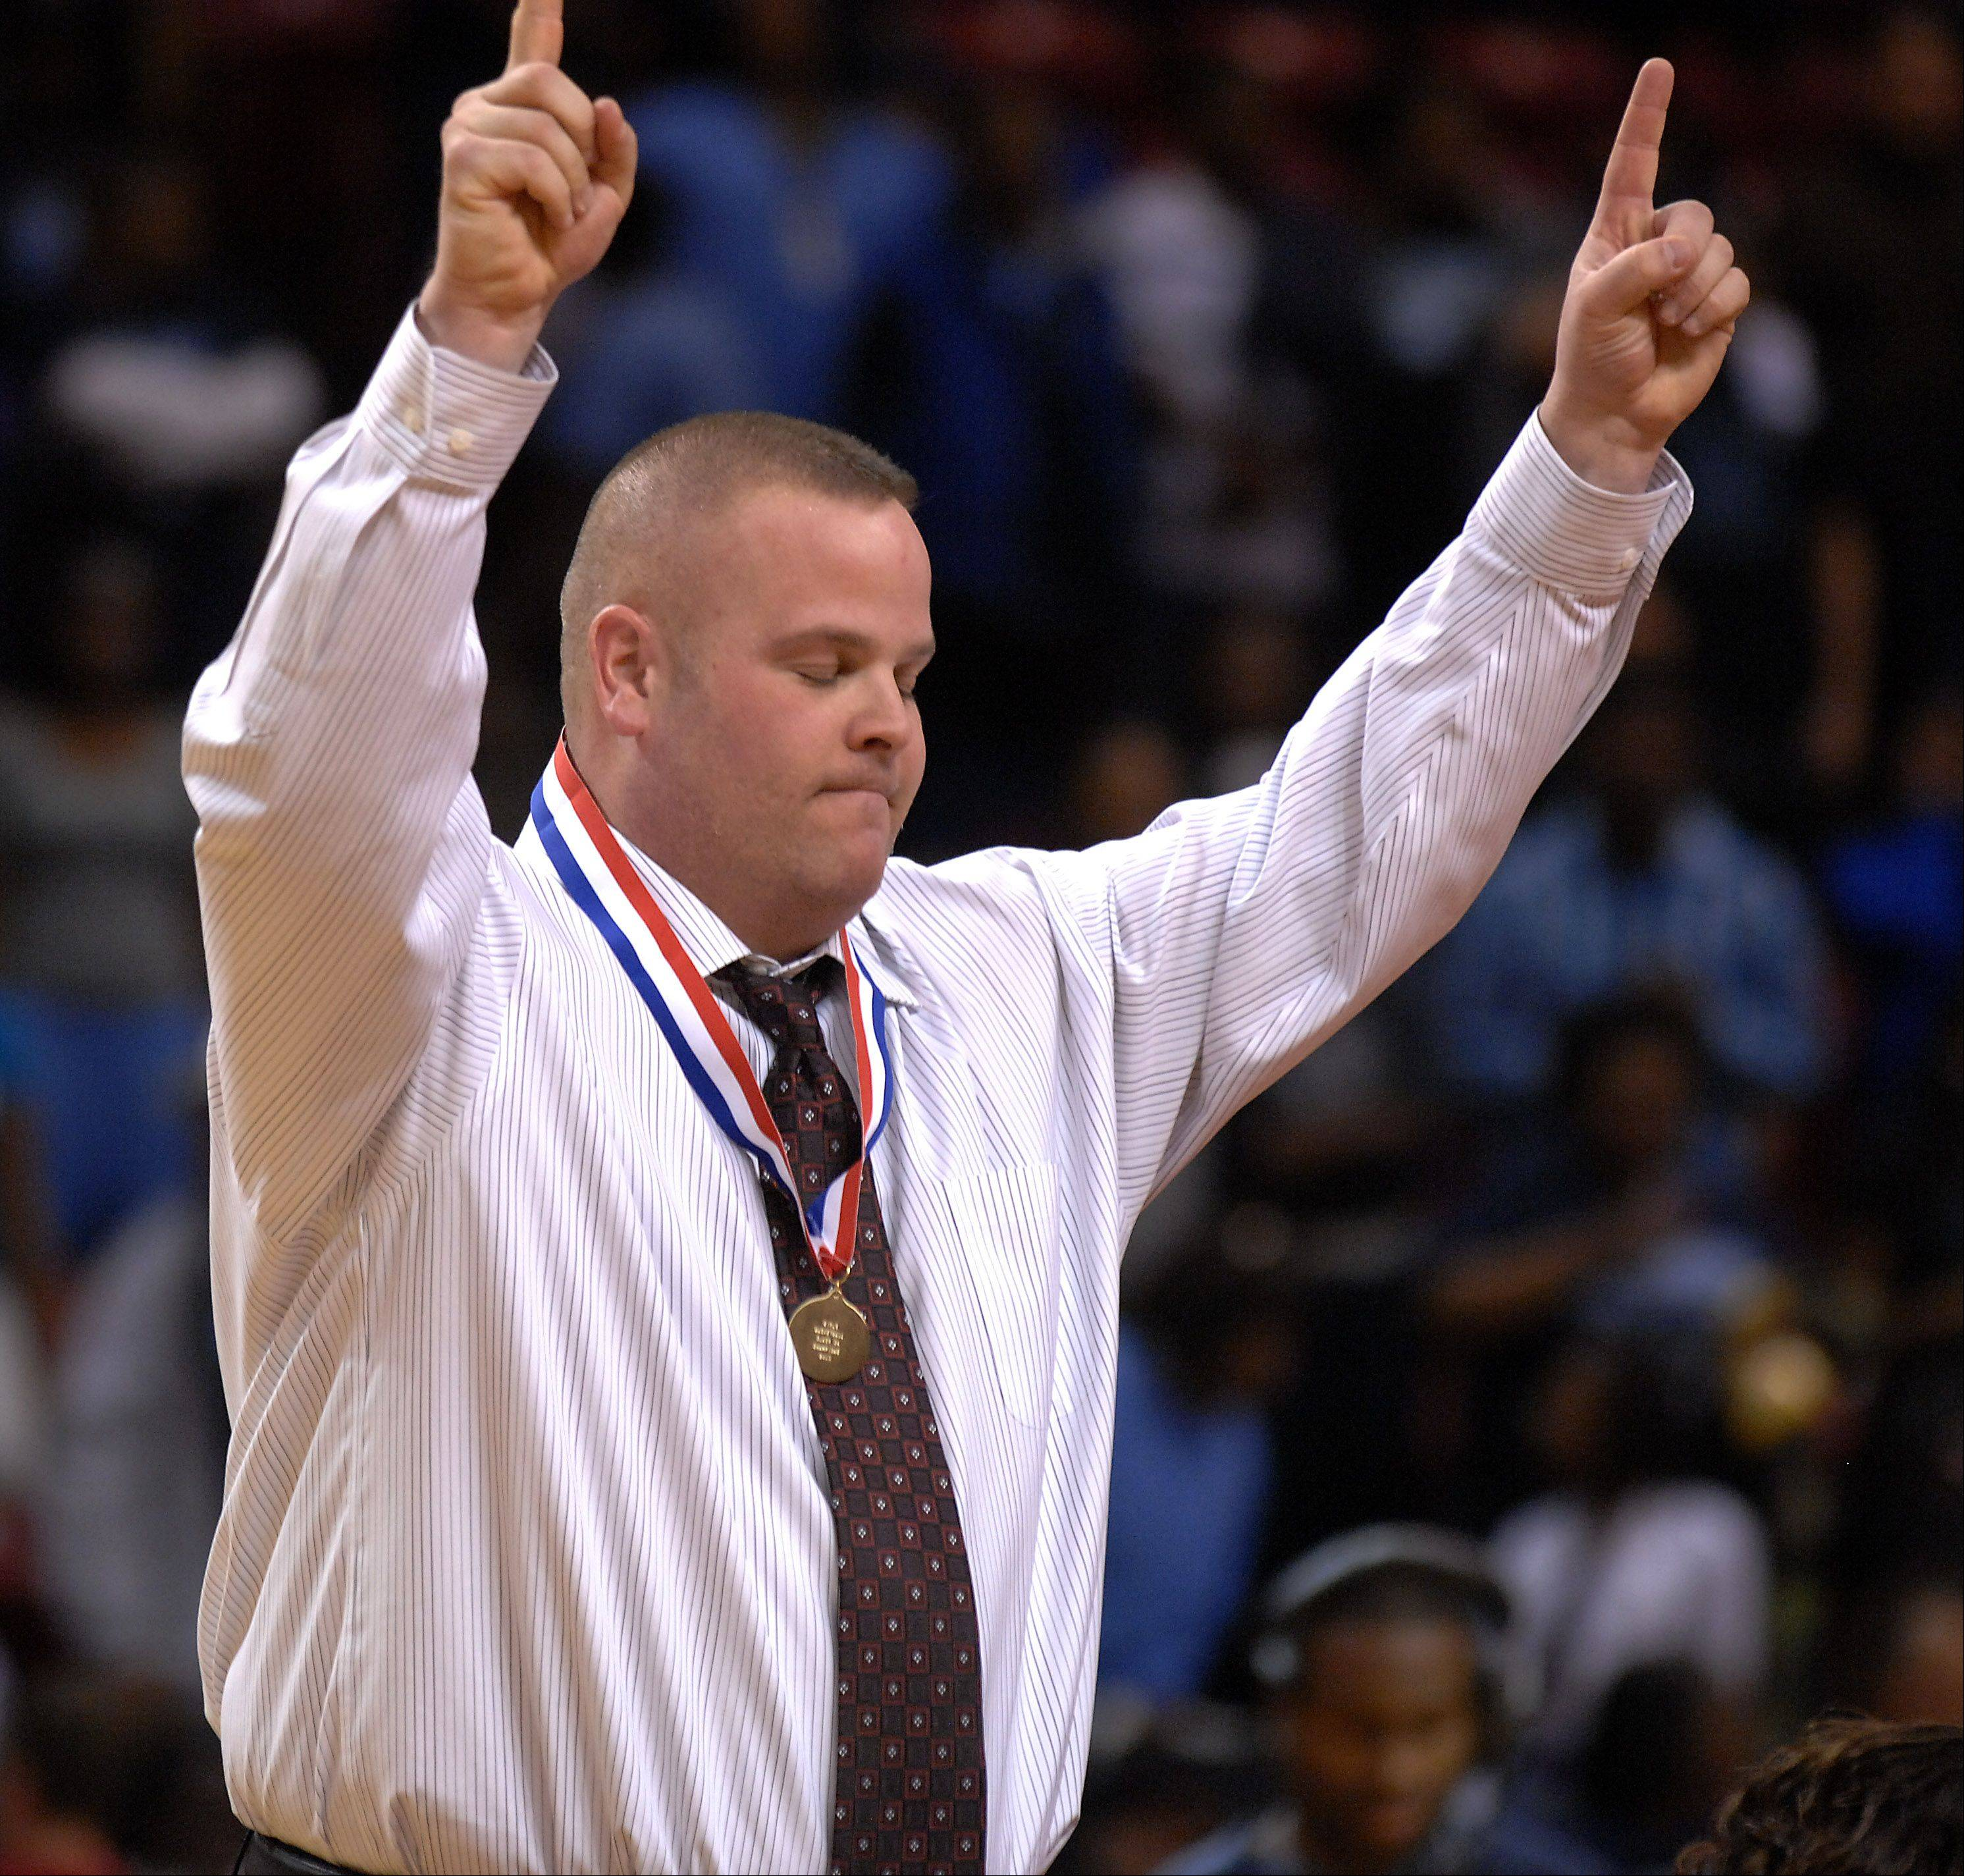 Montini's coach Jason Nichols celebrates his win over Hillcrest in the girls 4A basketball finals in Normal on Saturday.